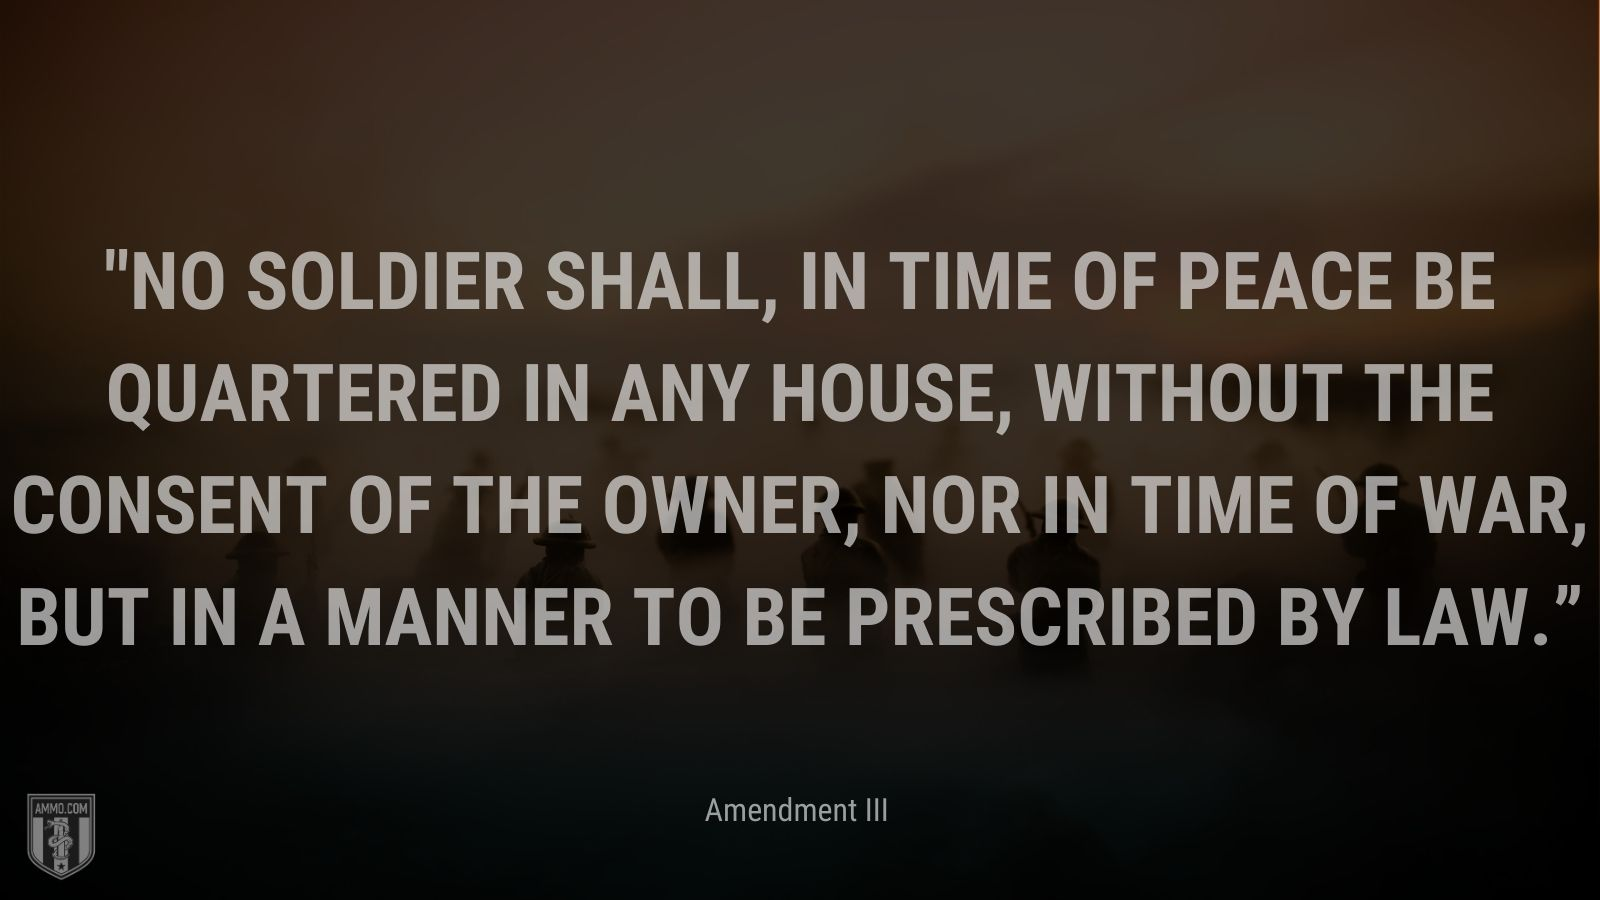 """""""No Soldier shall, in time of peace be quartered in any house, without the consent of the Owner, nor in time of war, but in a manner to be prescribed by law."""" - Amendment III"""